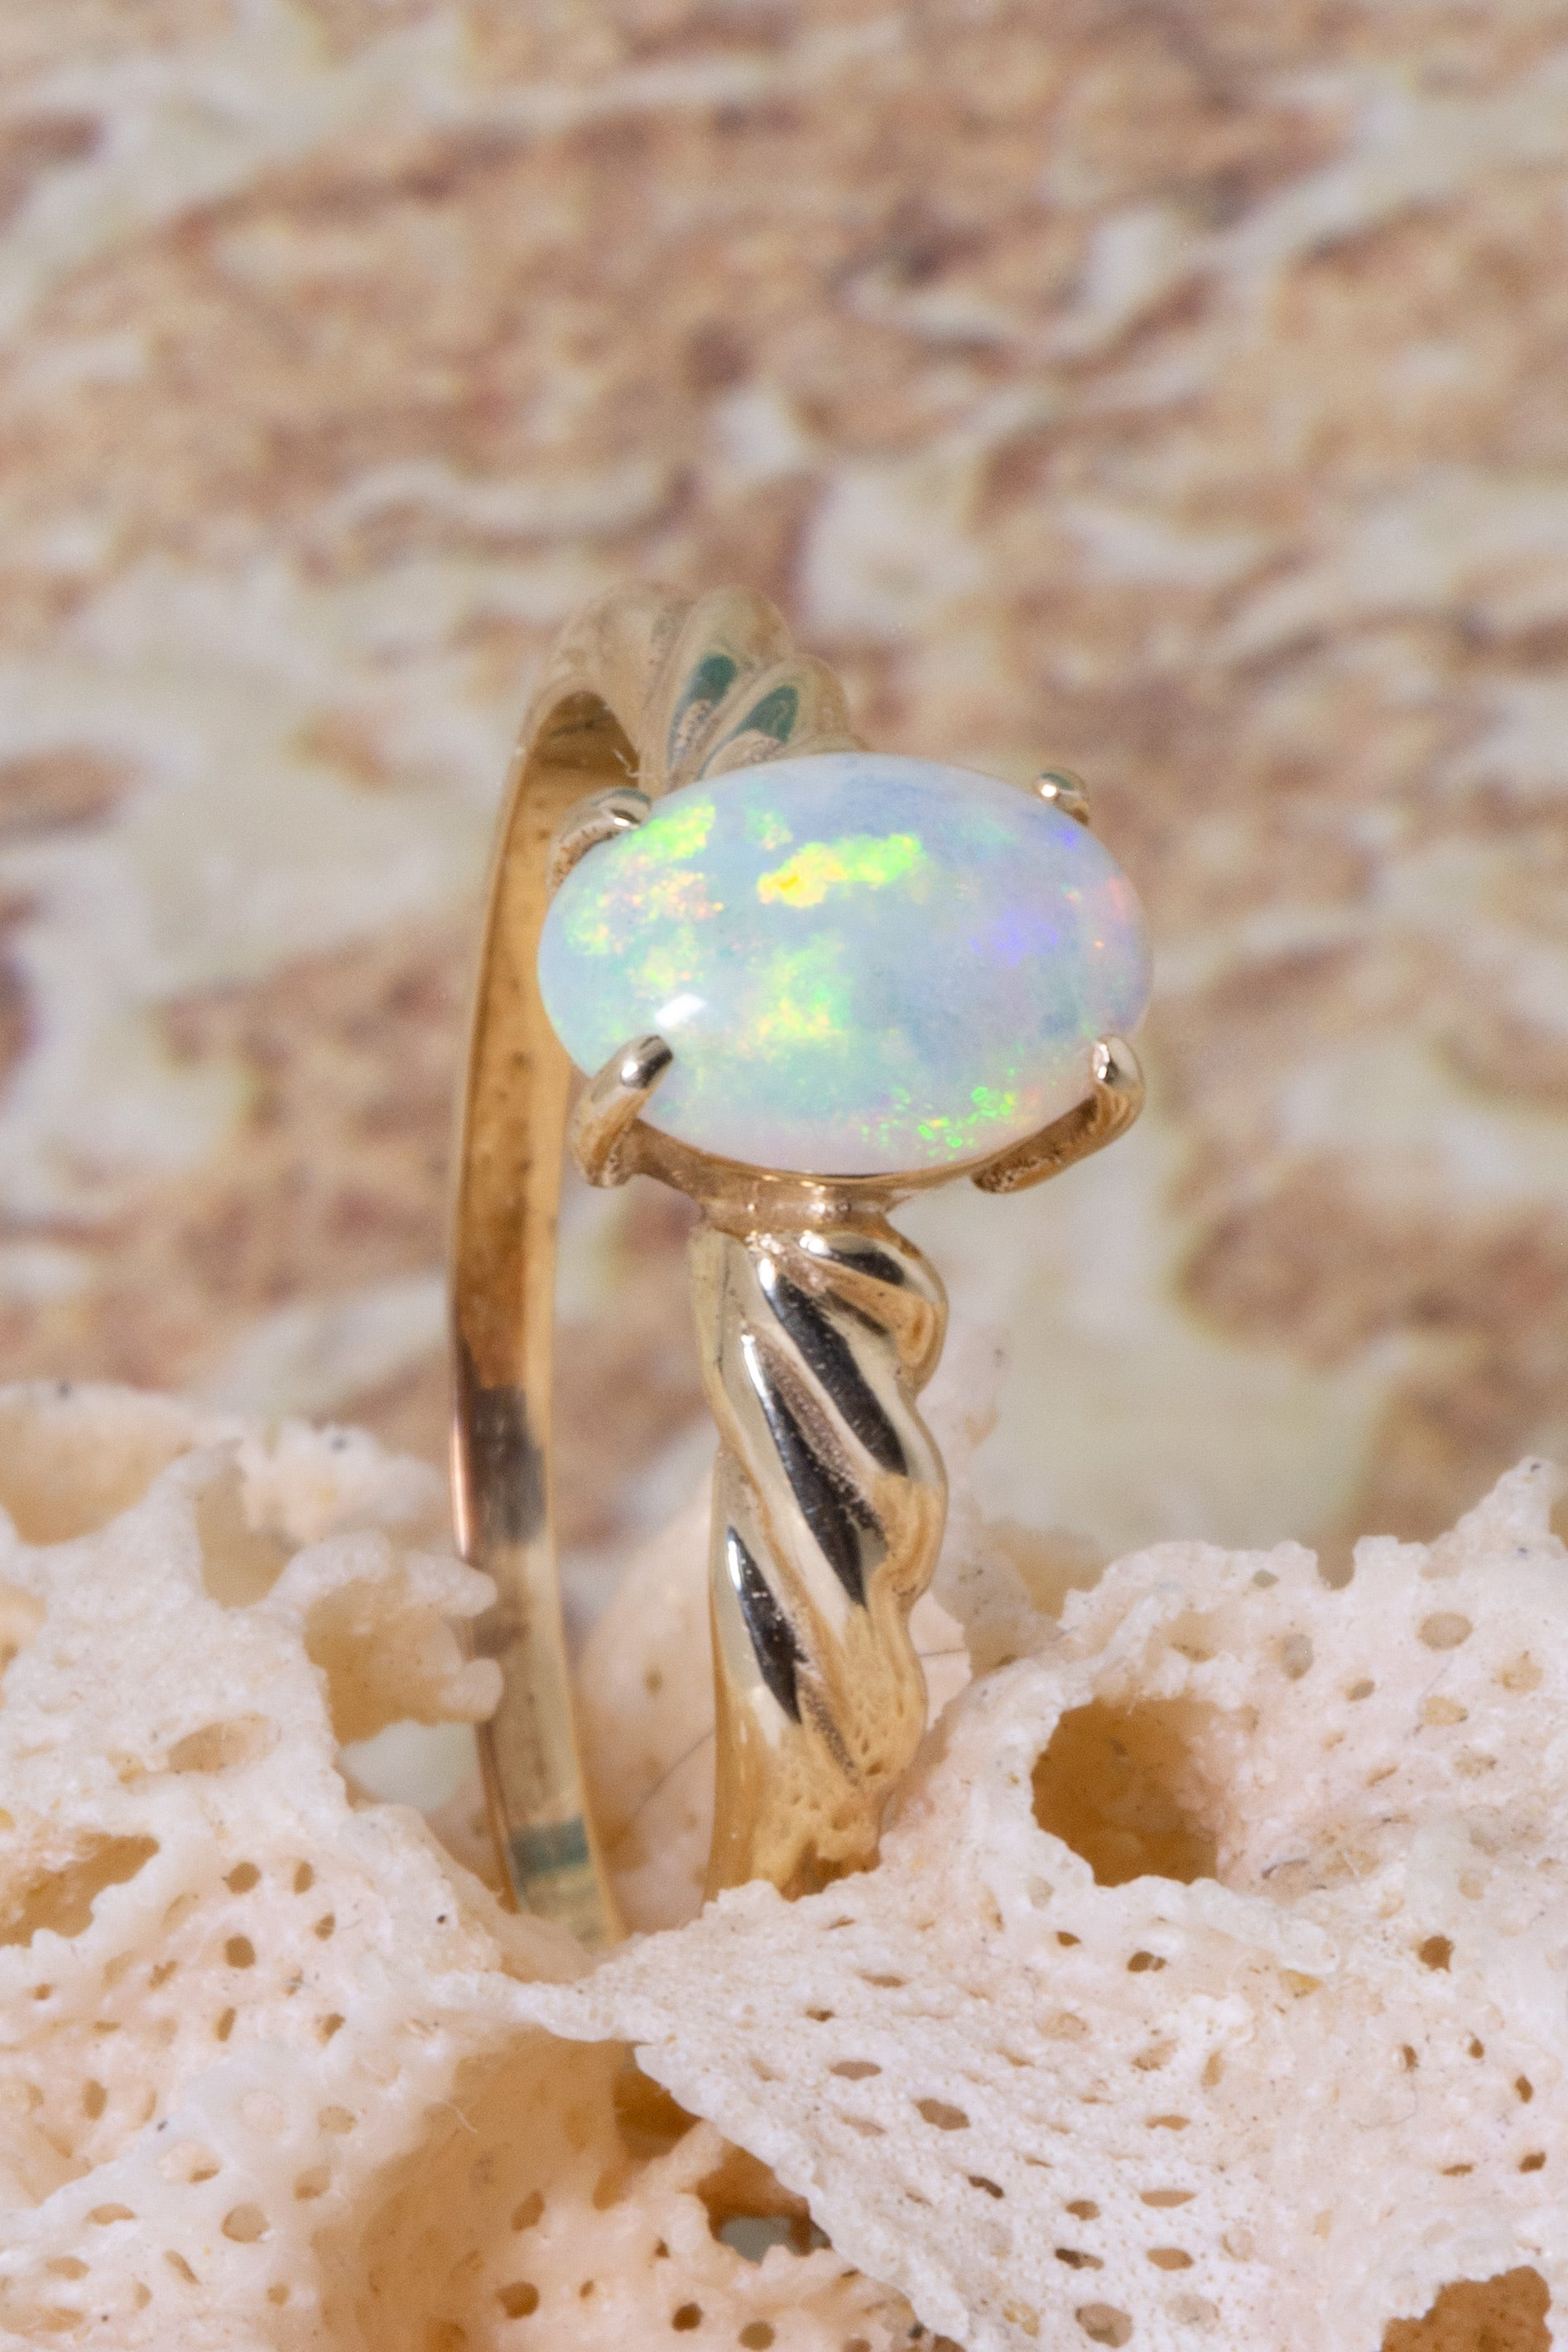 This pretty pre-loved vintage ring features a beautiful luminescent oval Australian Opal gemstone